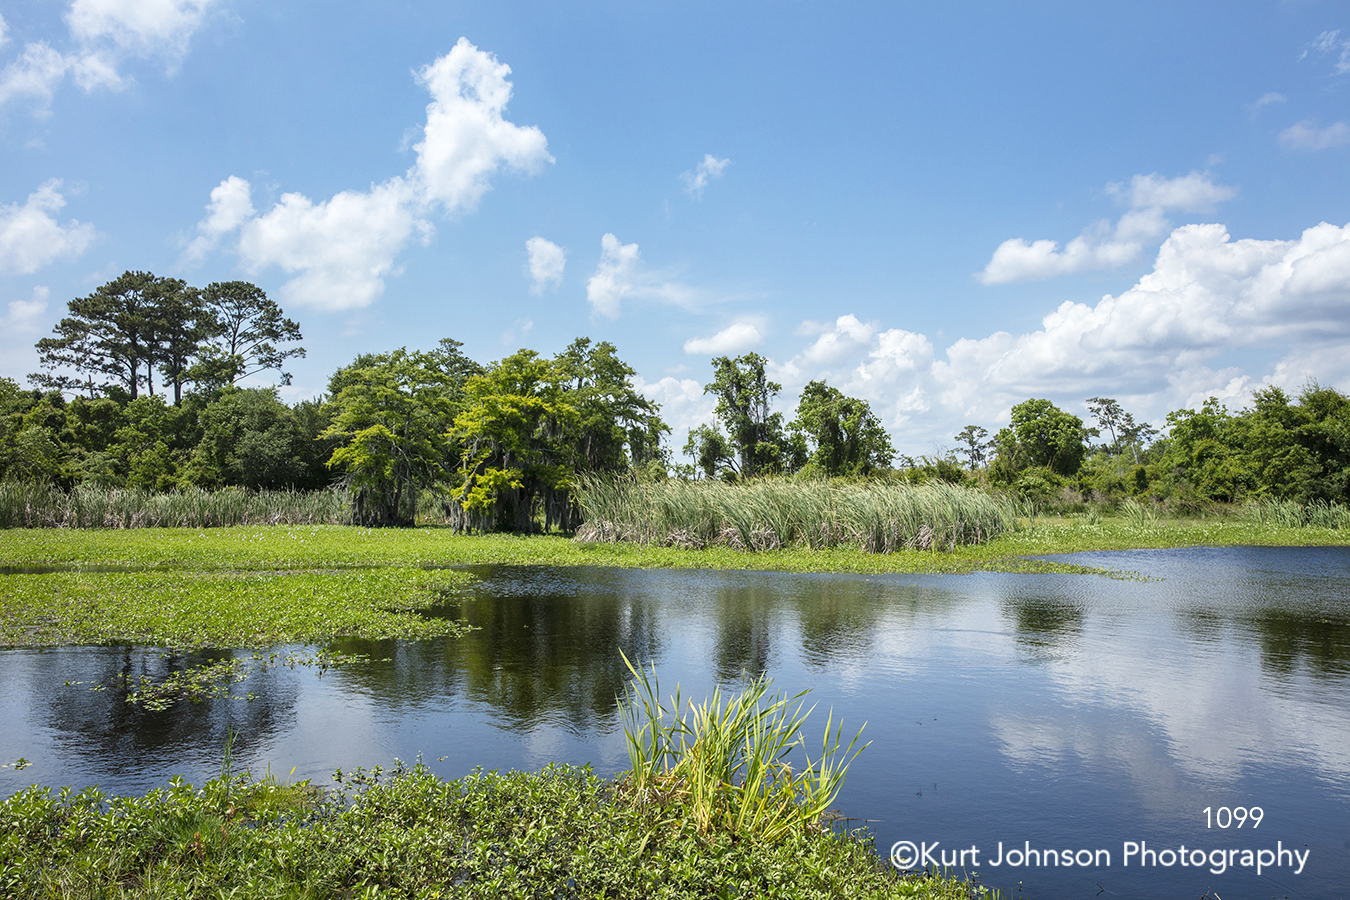 water waterscape green grass tree trees reflection blue sky clouds south southeast